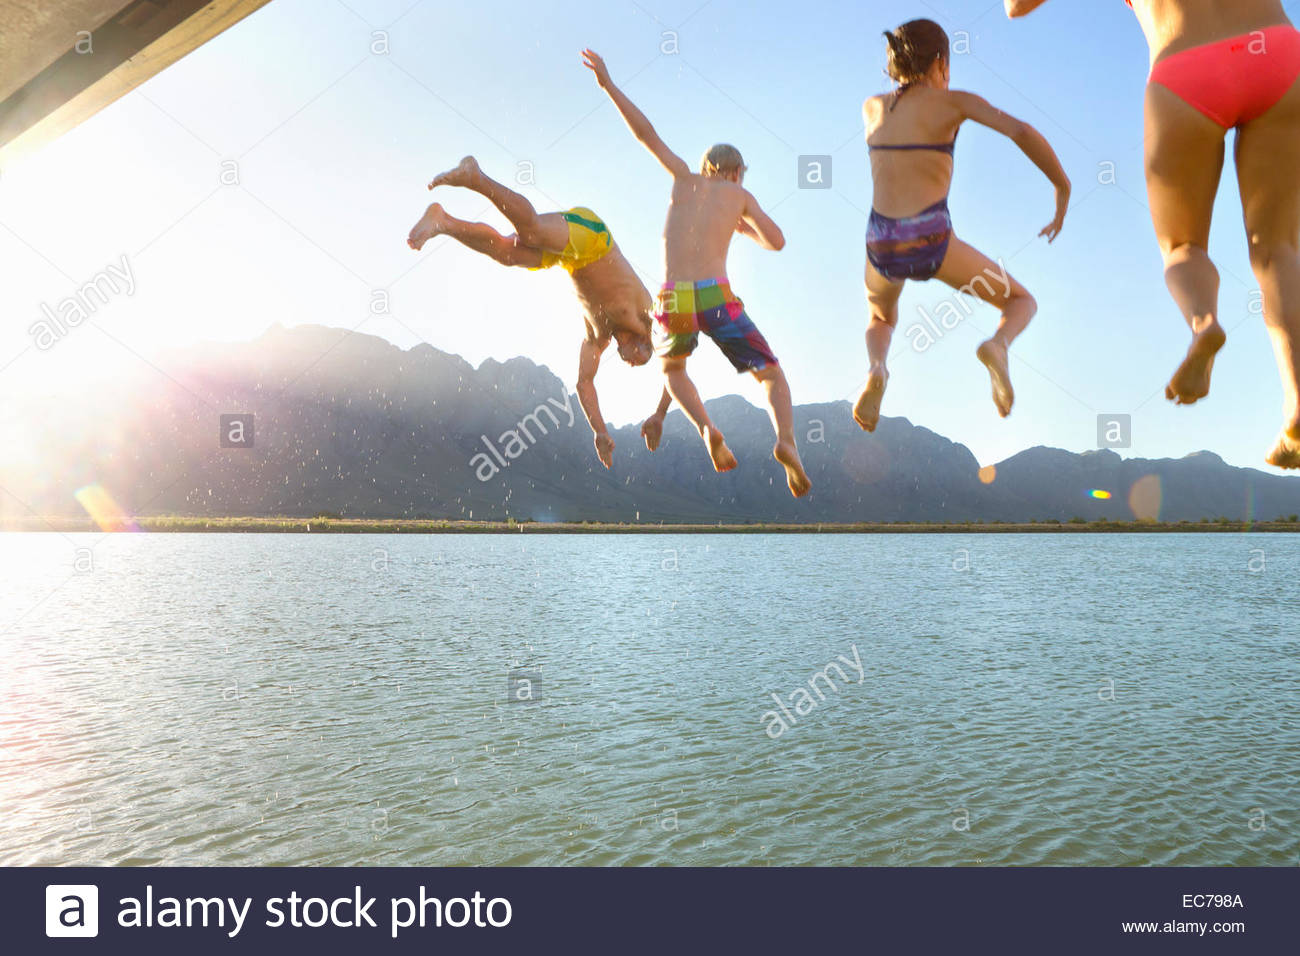 Family, in swimwear, jumping into a lake from a jetty - Stock Image